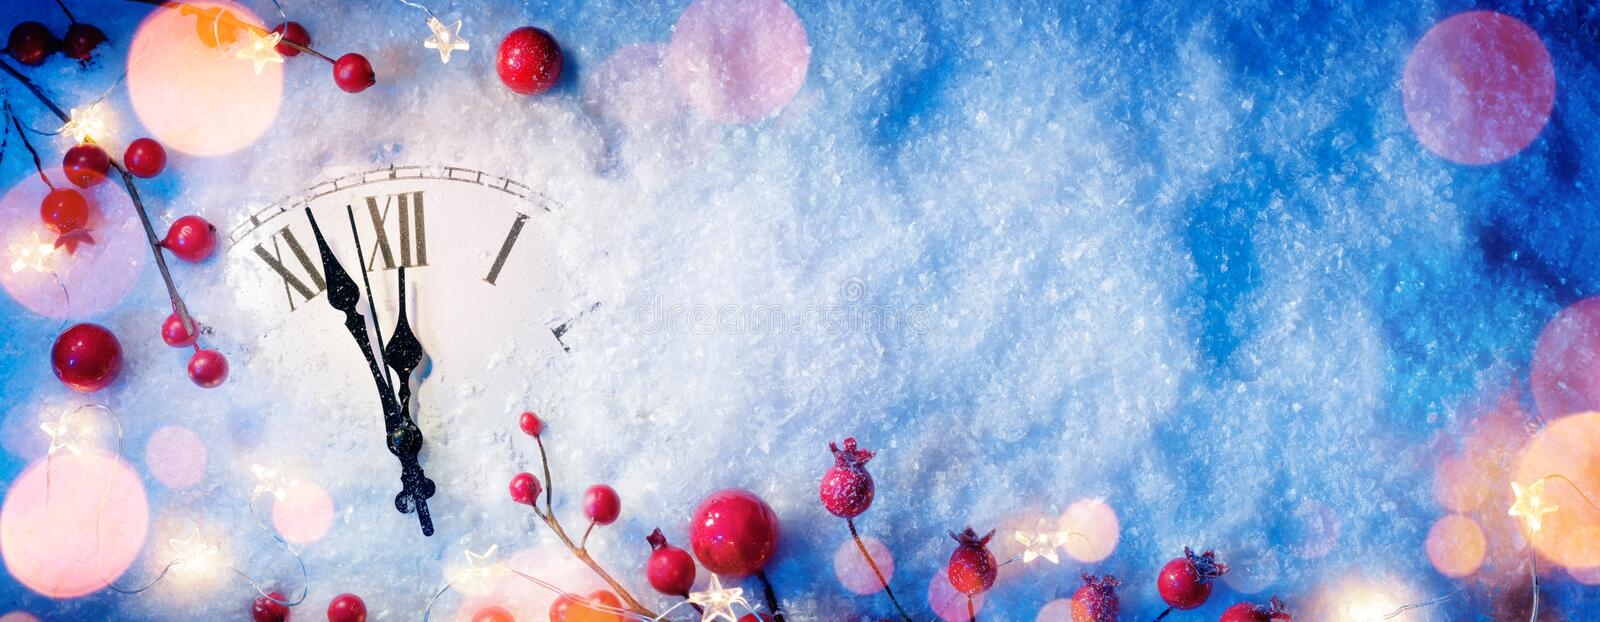 Waiting Midnight - Happy New Year With Clock And Berries royalty free stock photography